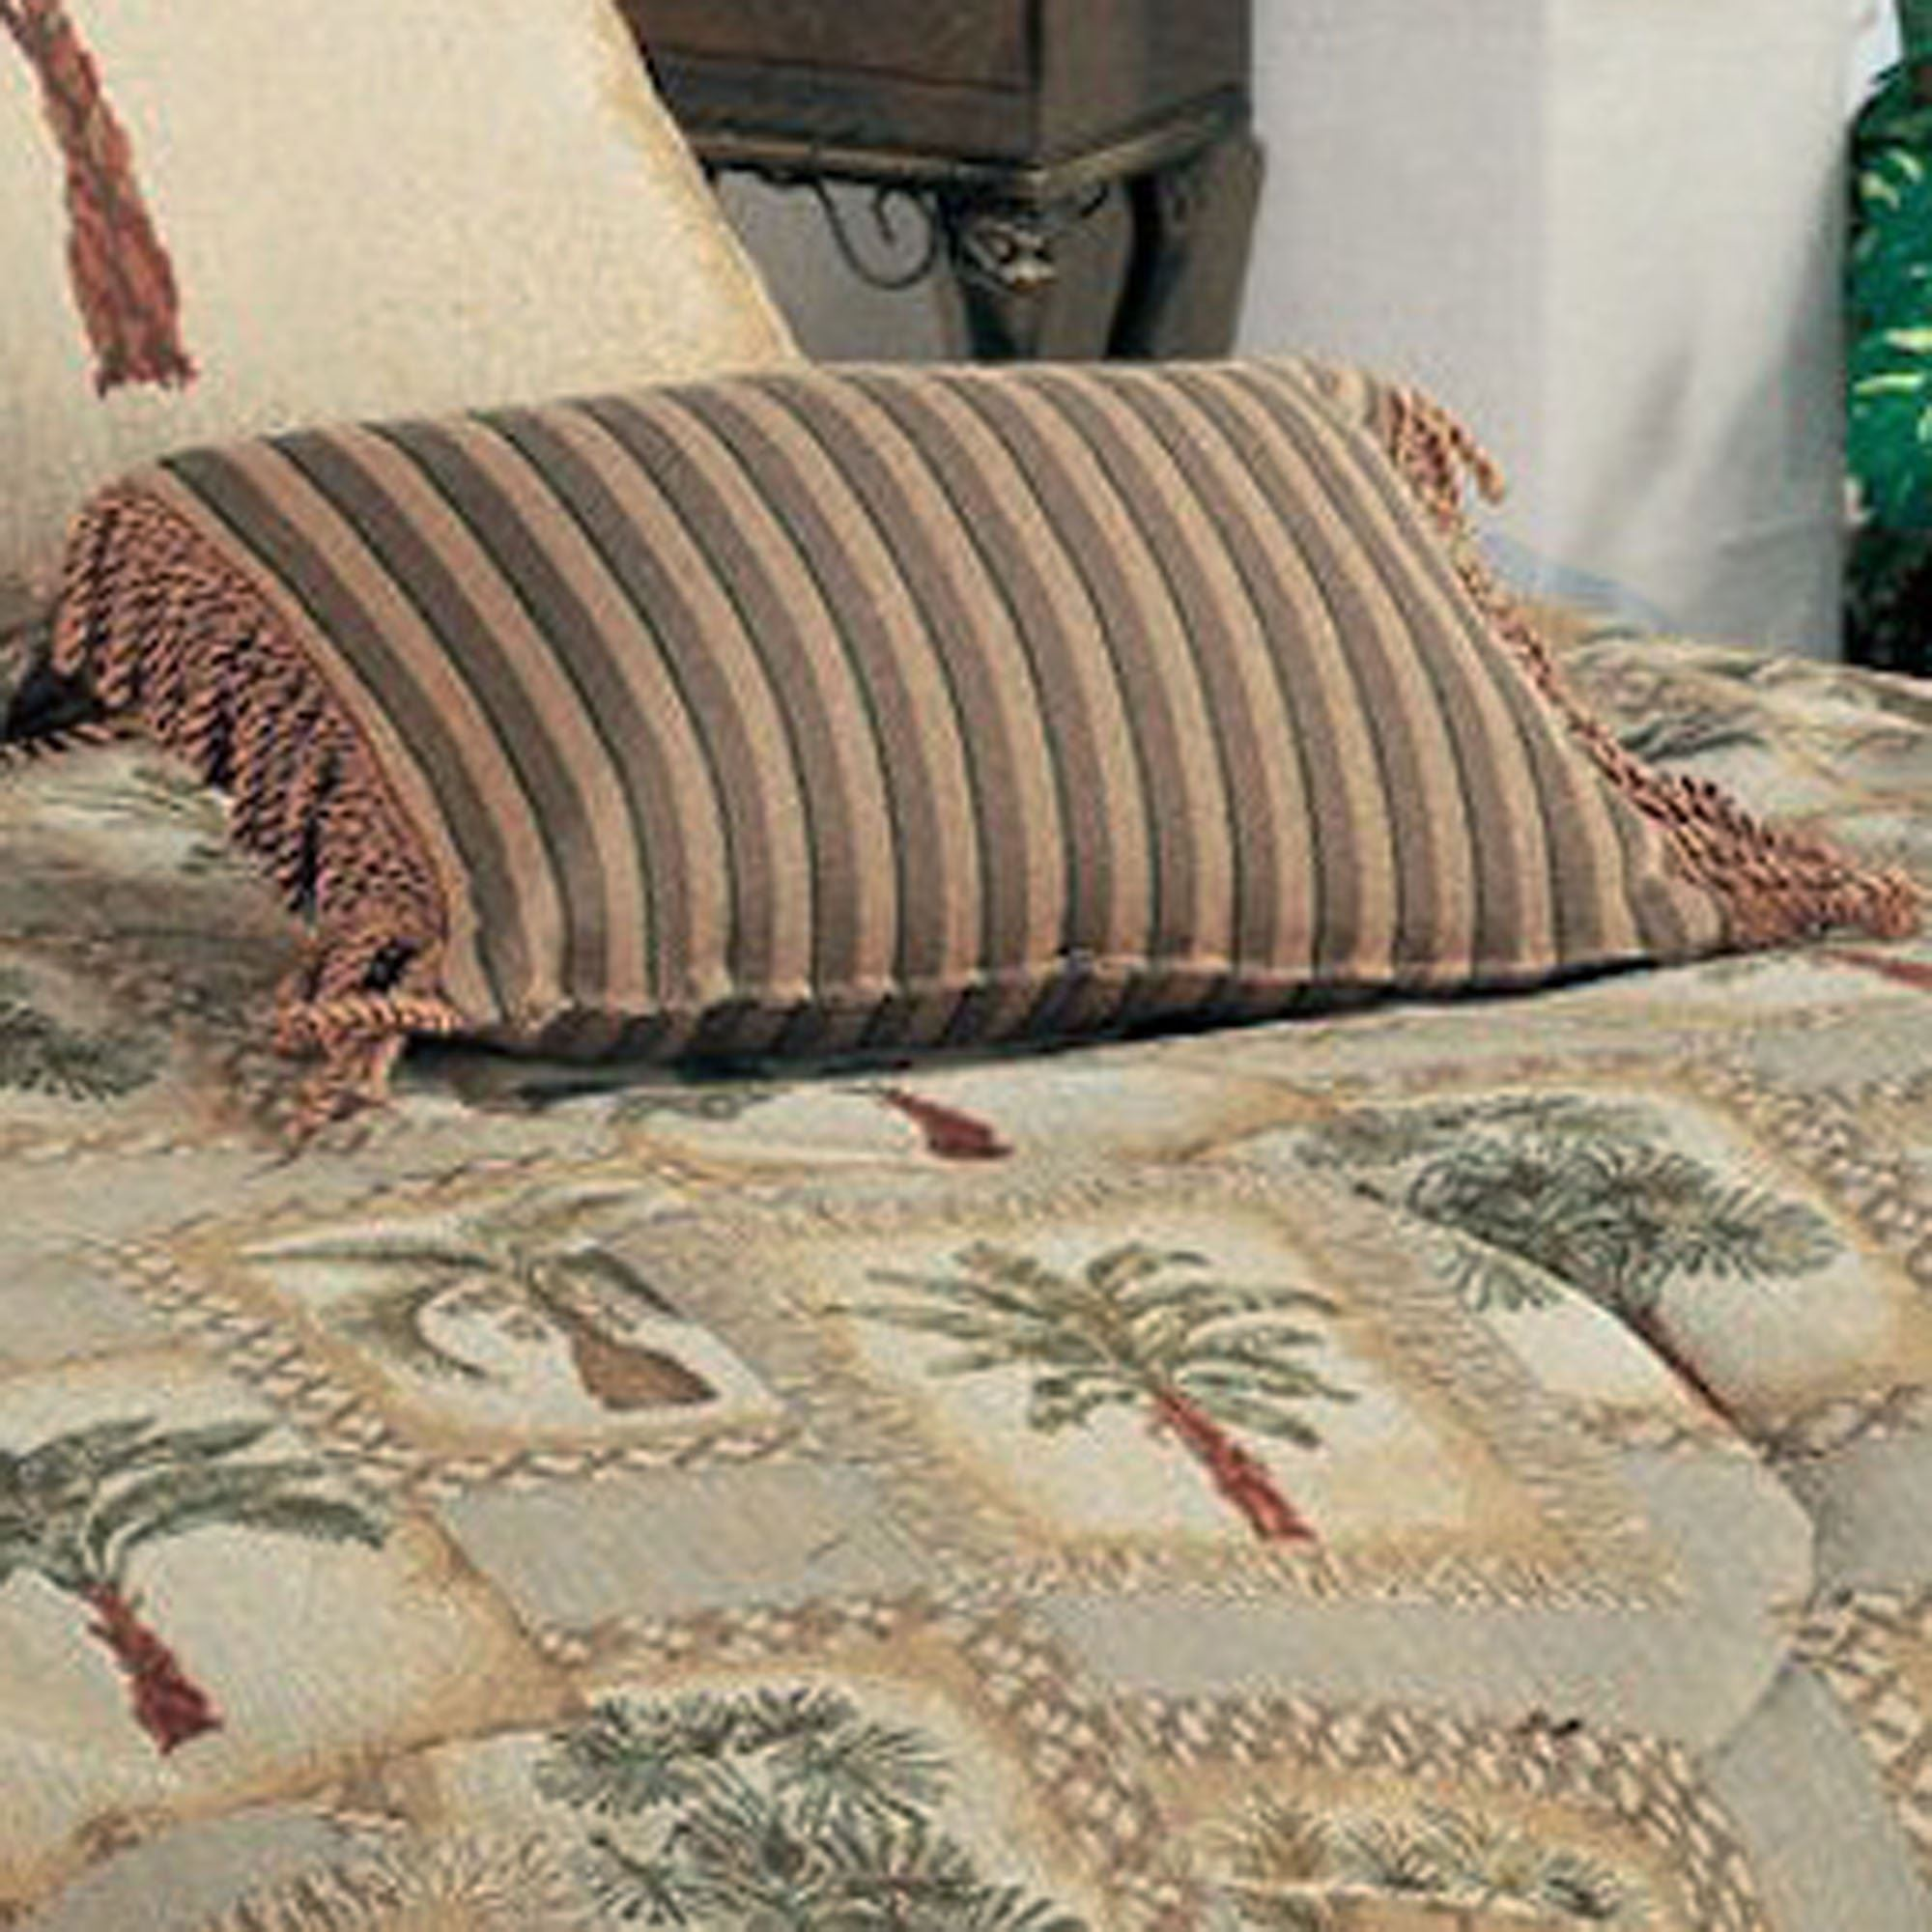 Famous Palm Grove Tropical Palm Tree Comforter Bedding DK93